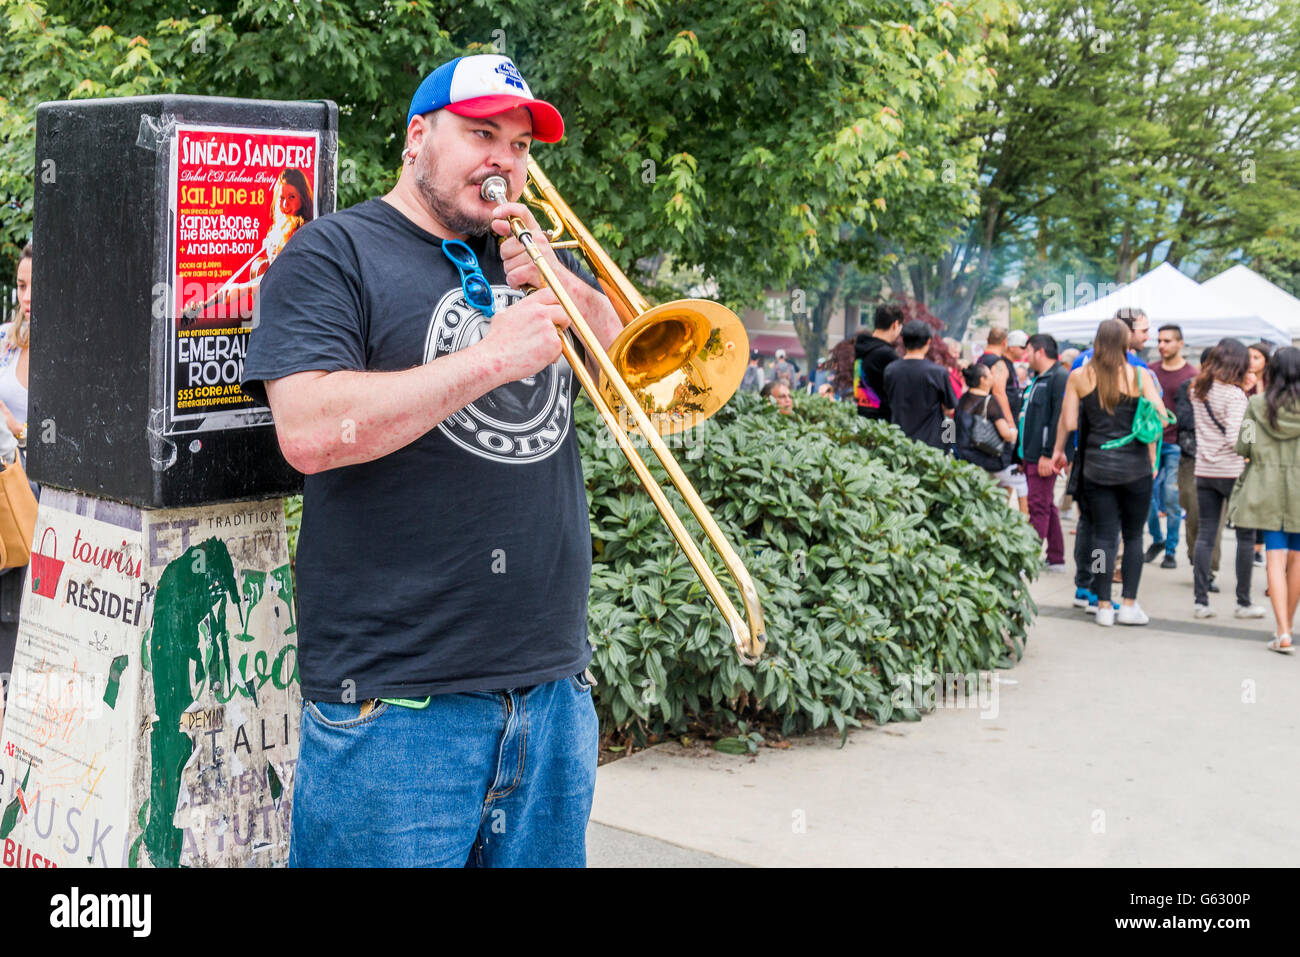 Busker playing trombone, Commercial Drive, Vancouver, British Columbia, Canada - Stock Image